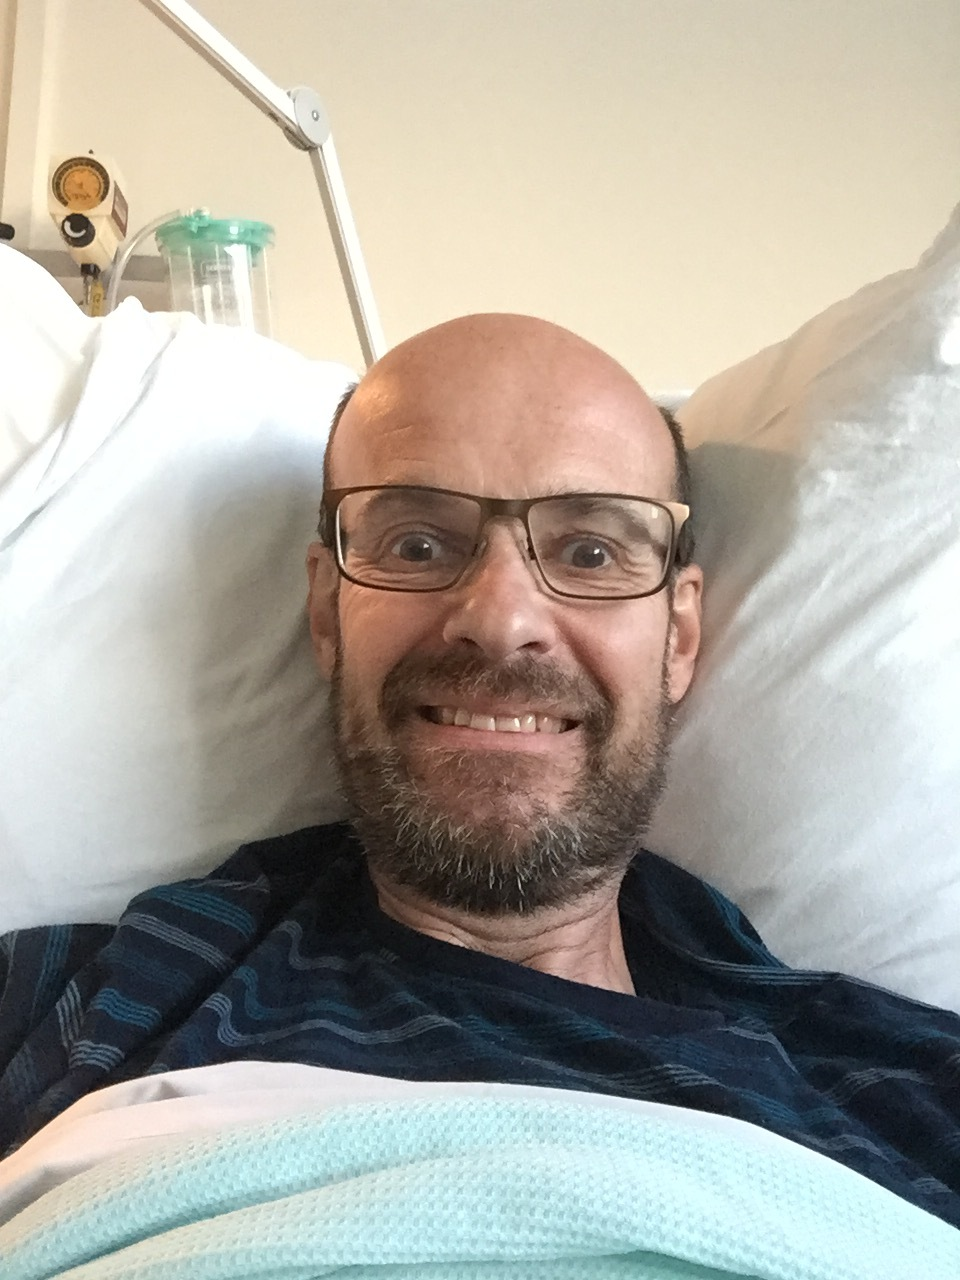 Stage four bowel cancer sufferer recounts his story